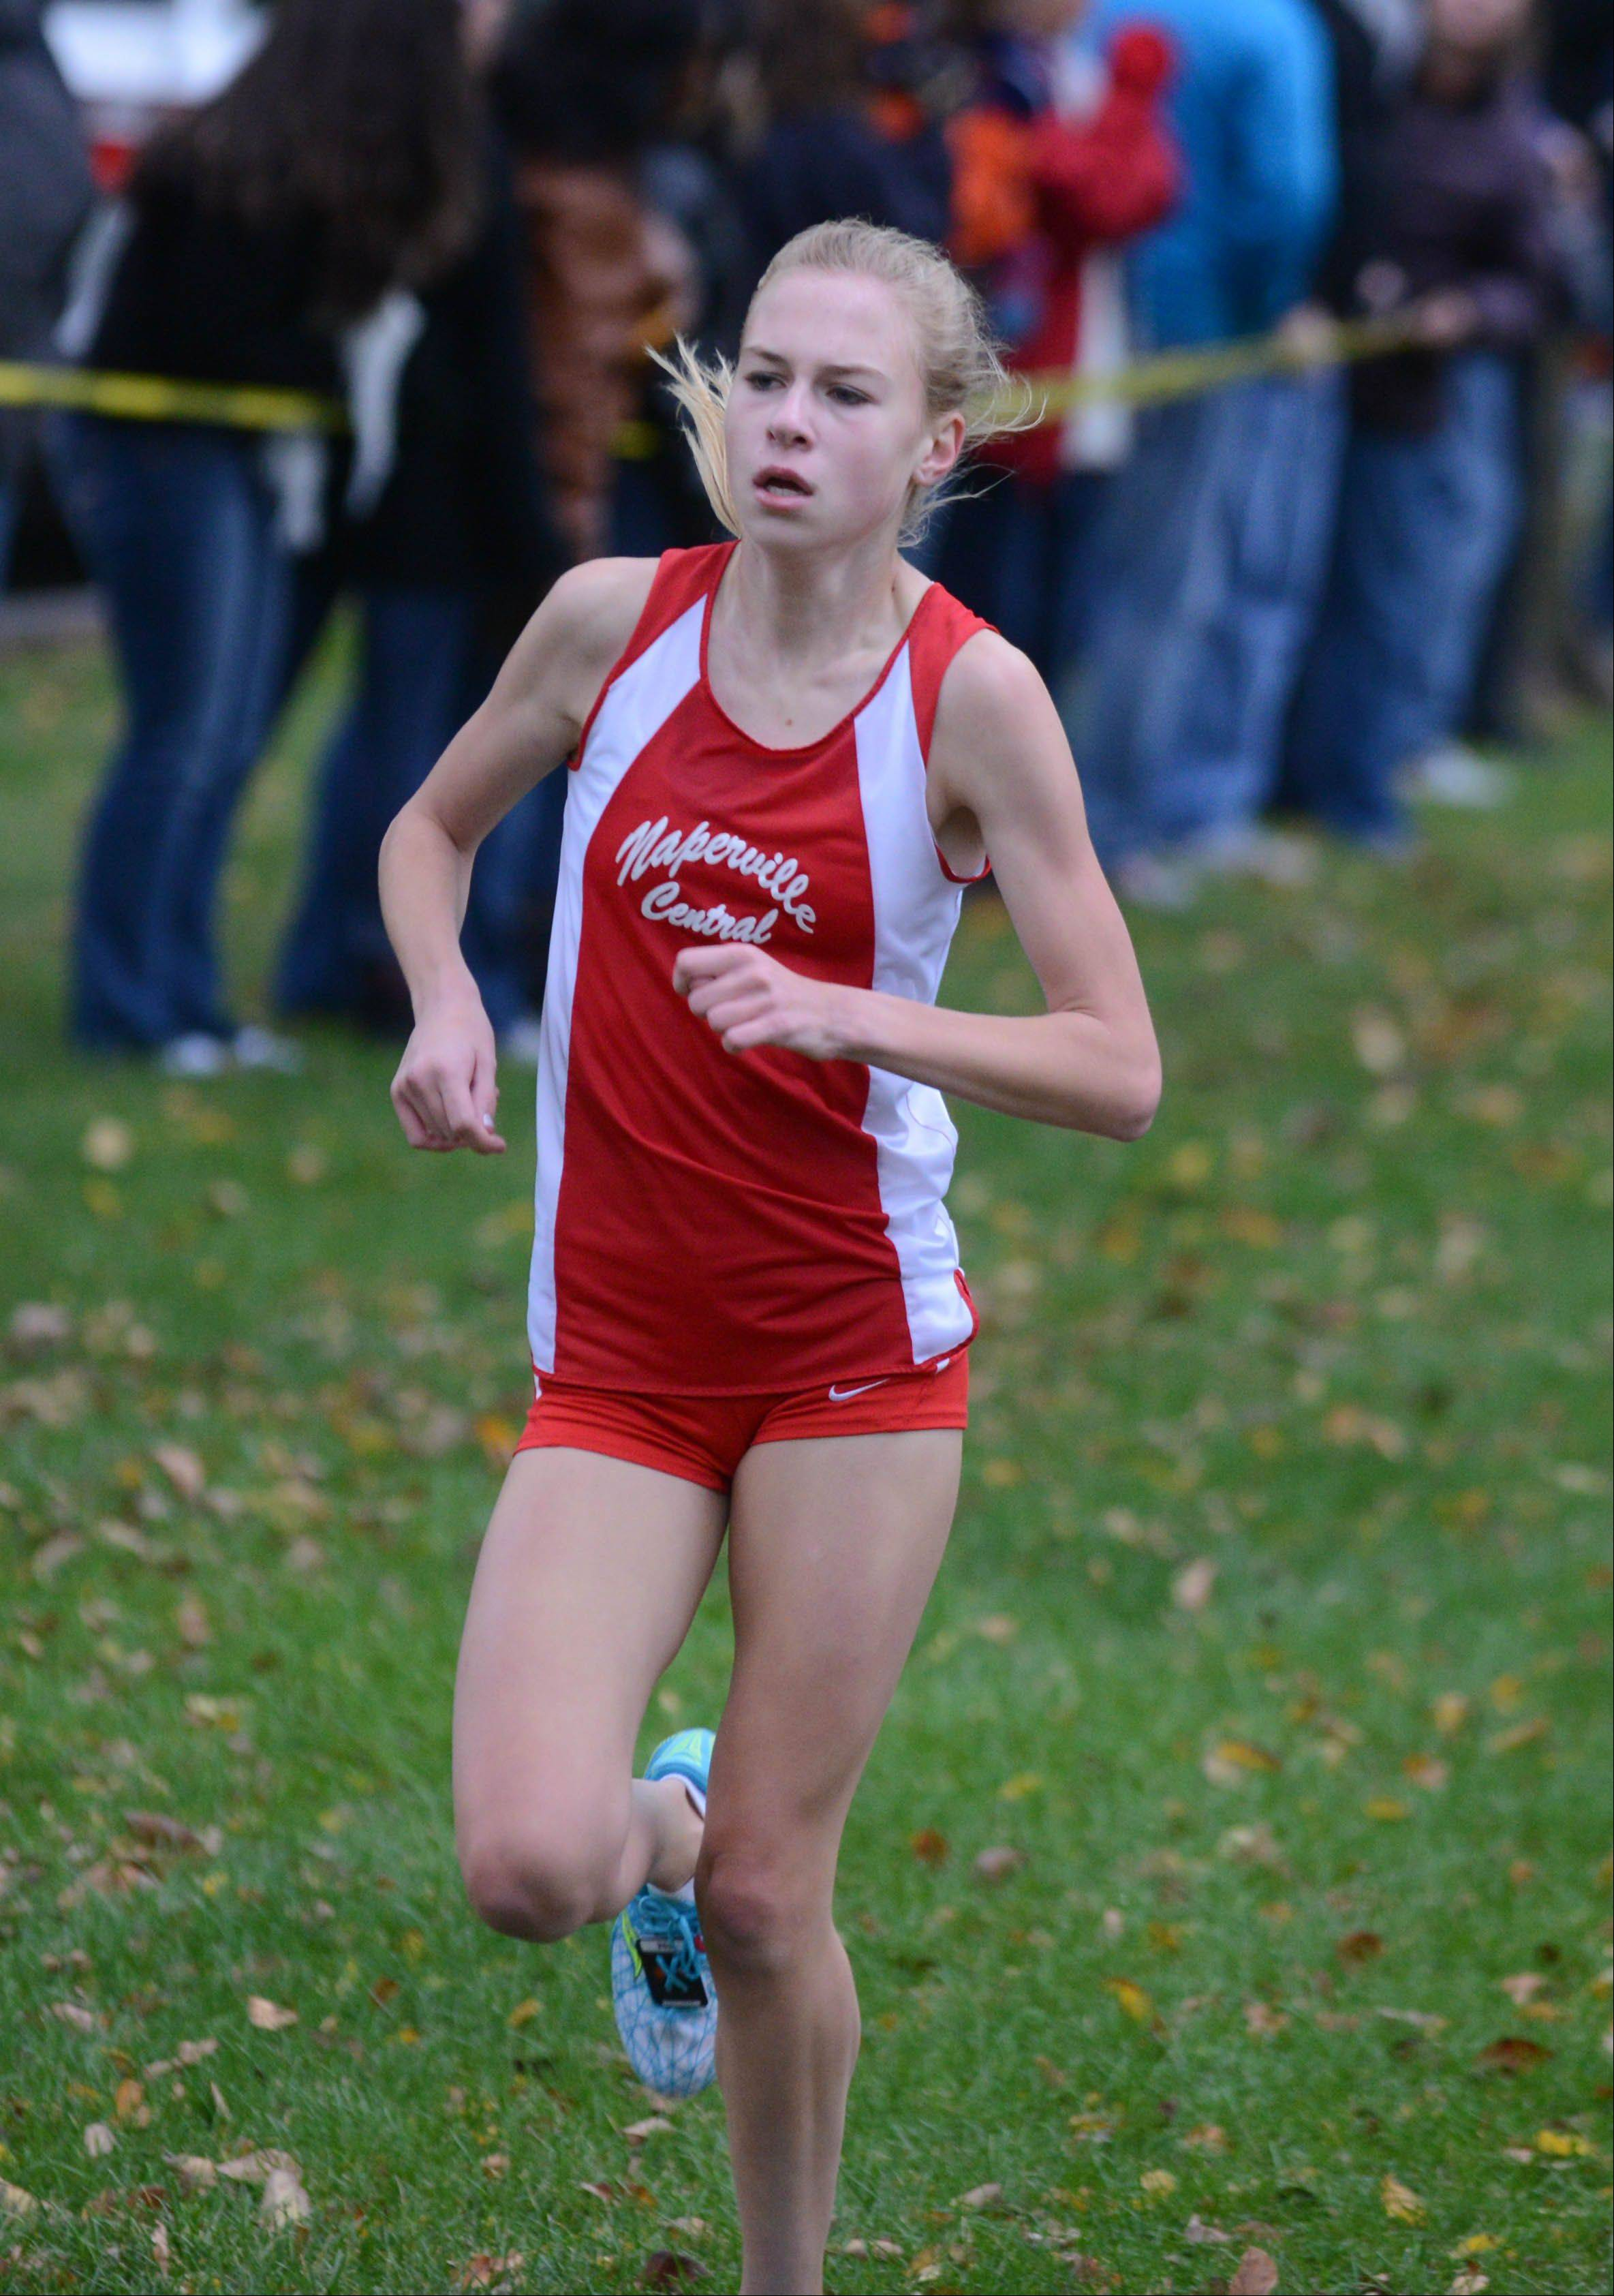 Katie Hoffman of Naperville Central finishes third at the DuPage Valley Conference boys and girls cross country meet Friday.